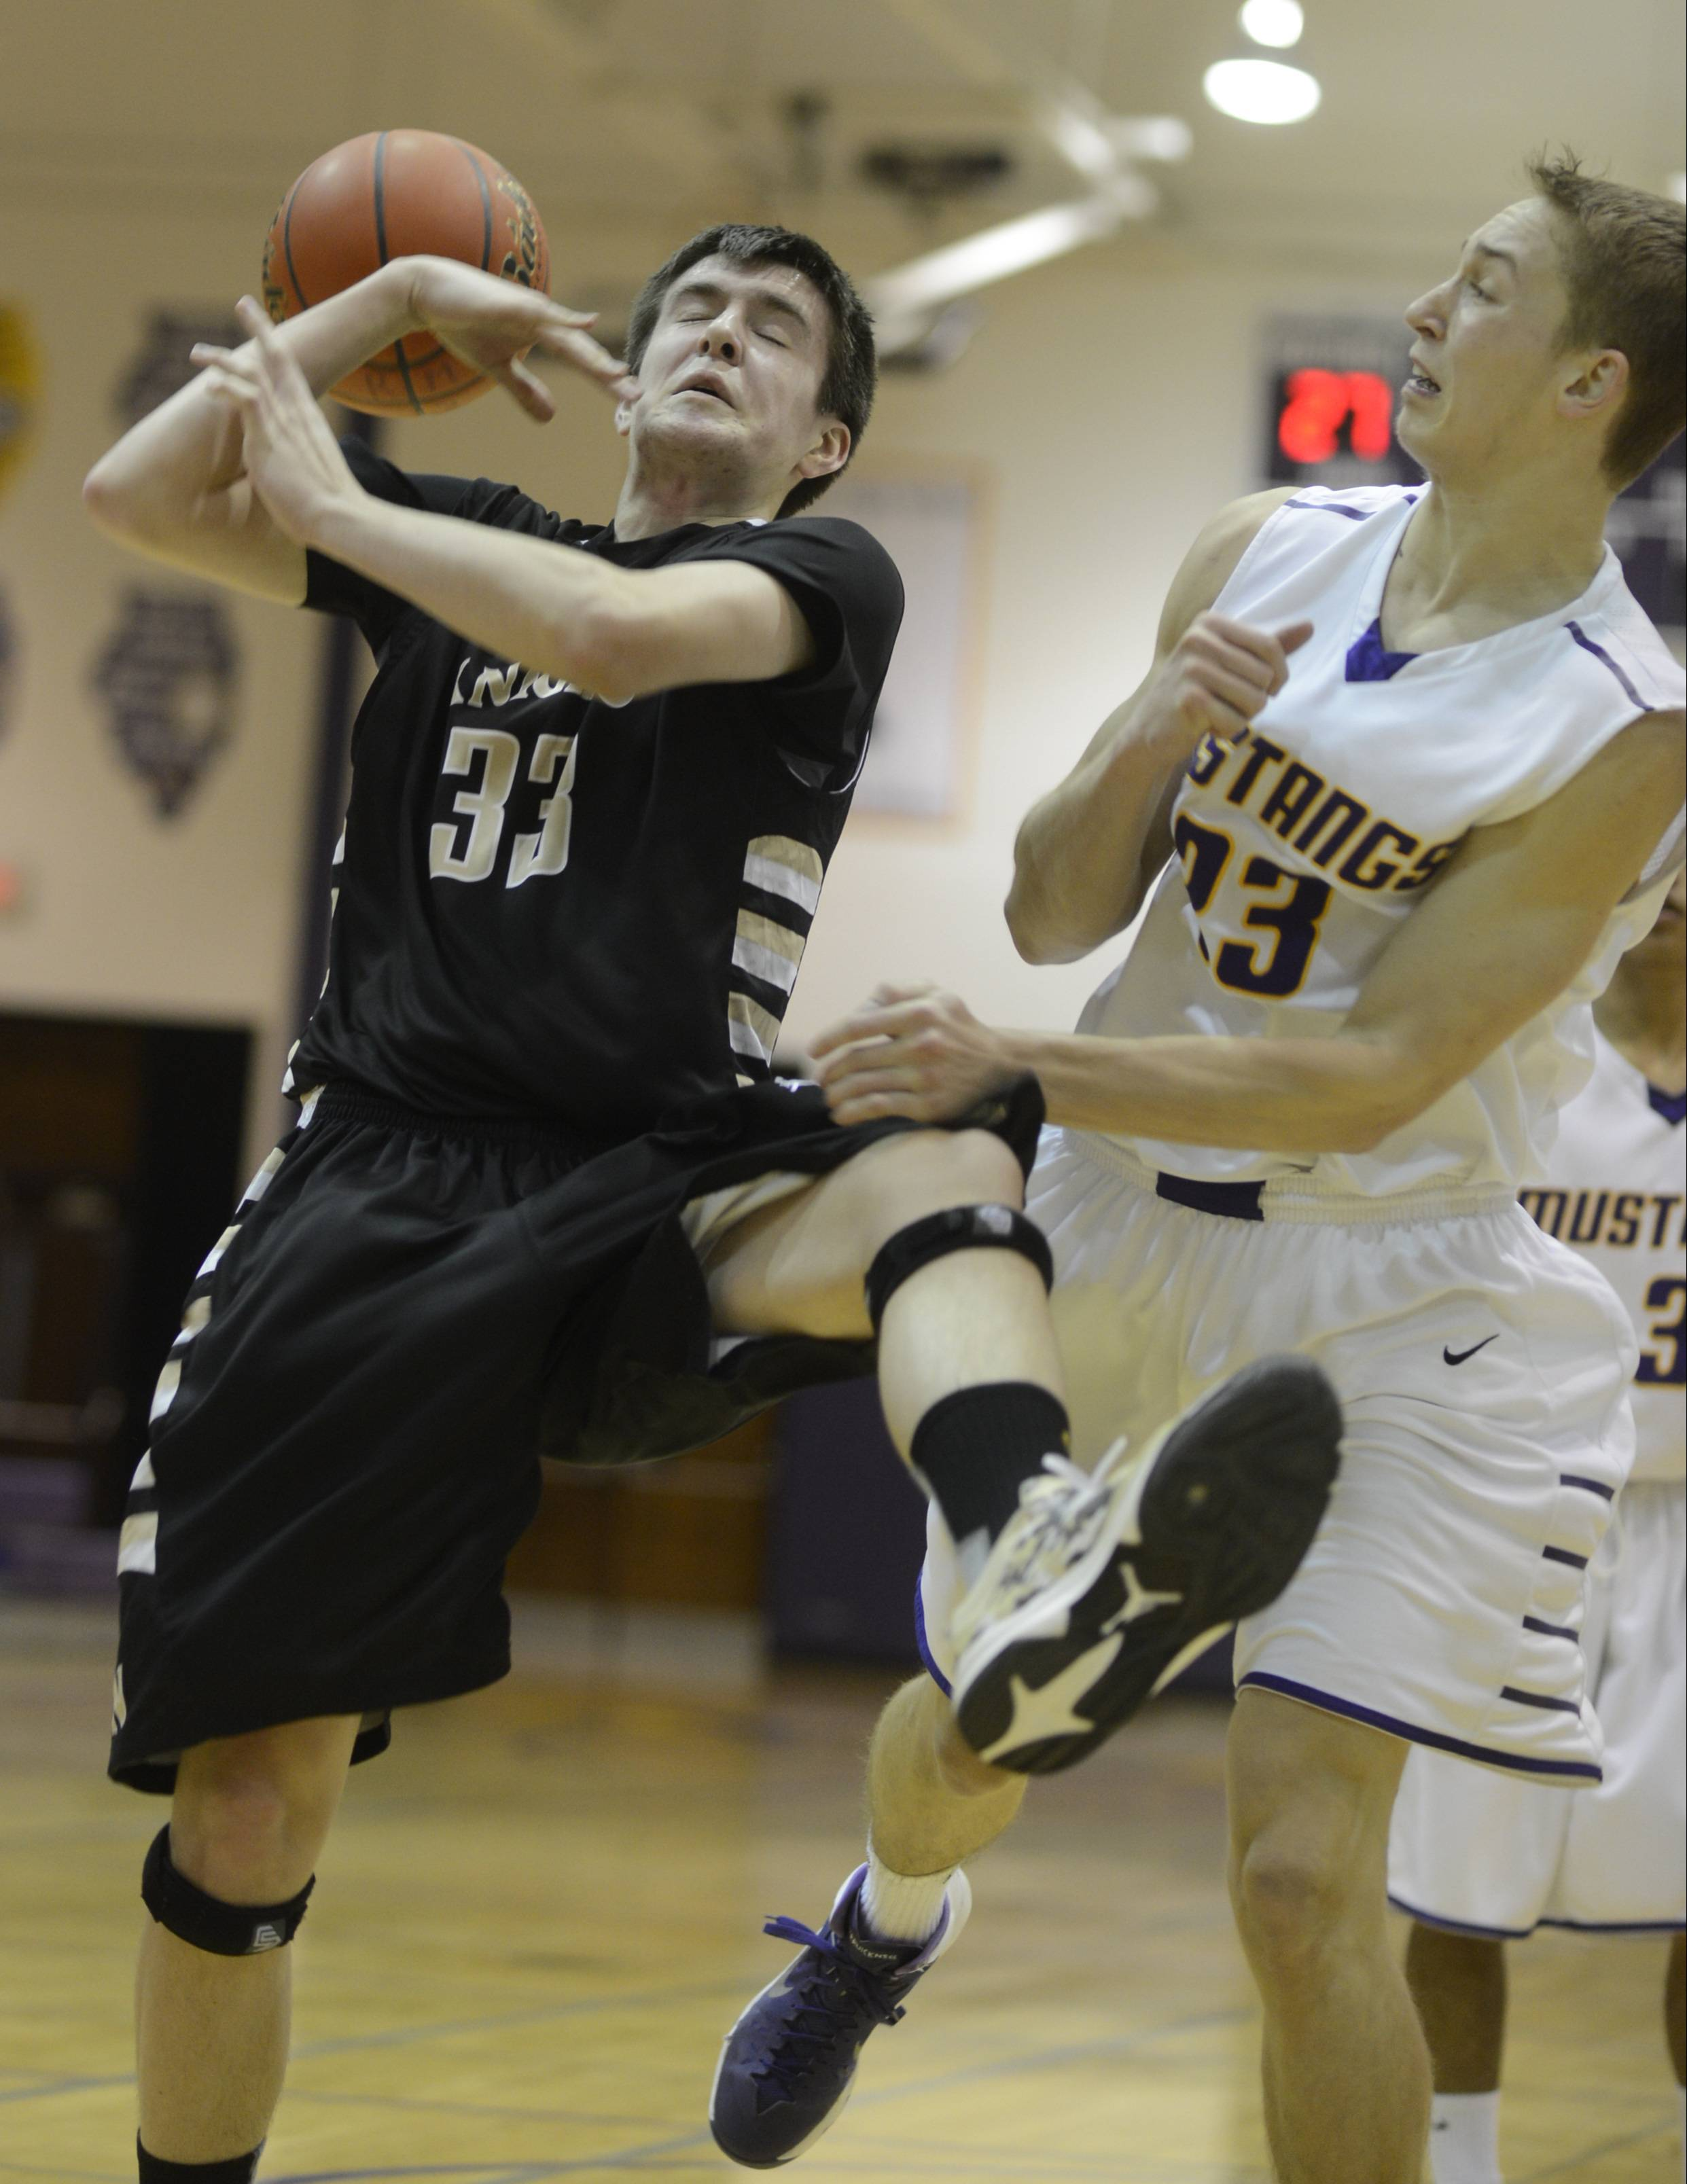 Photos from the Grayslake North vs. Rolling Meadows boys basketball game on Tuesday, February 11th, in Rolling Meadows.